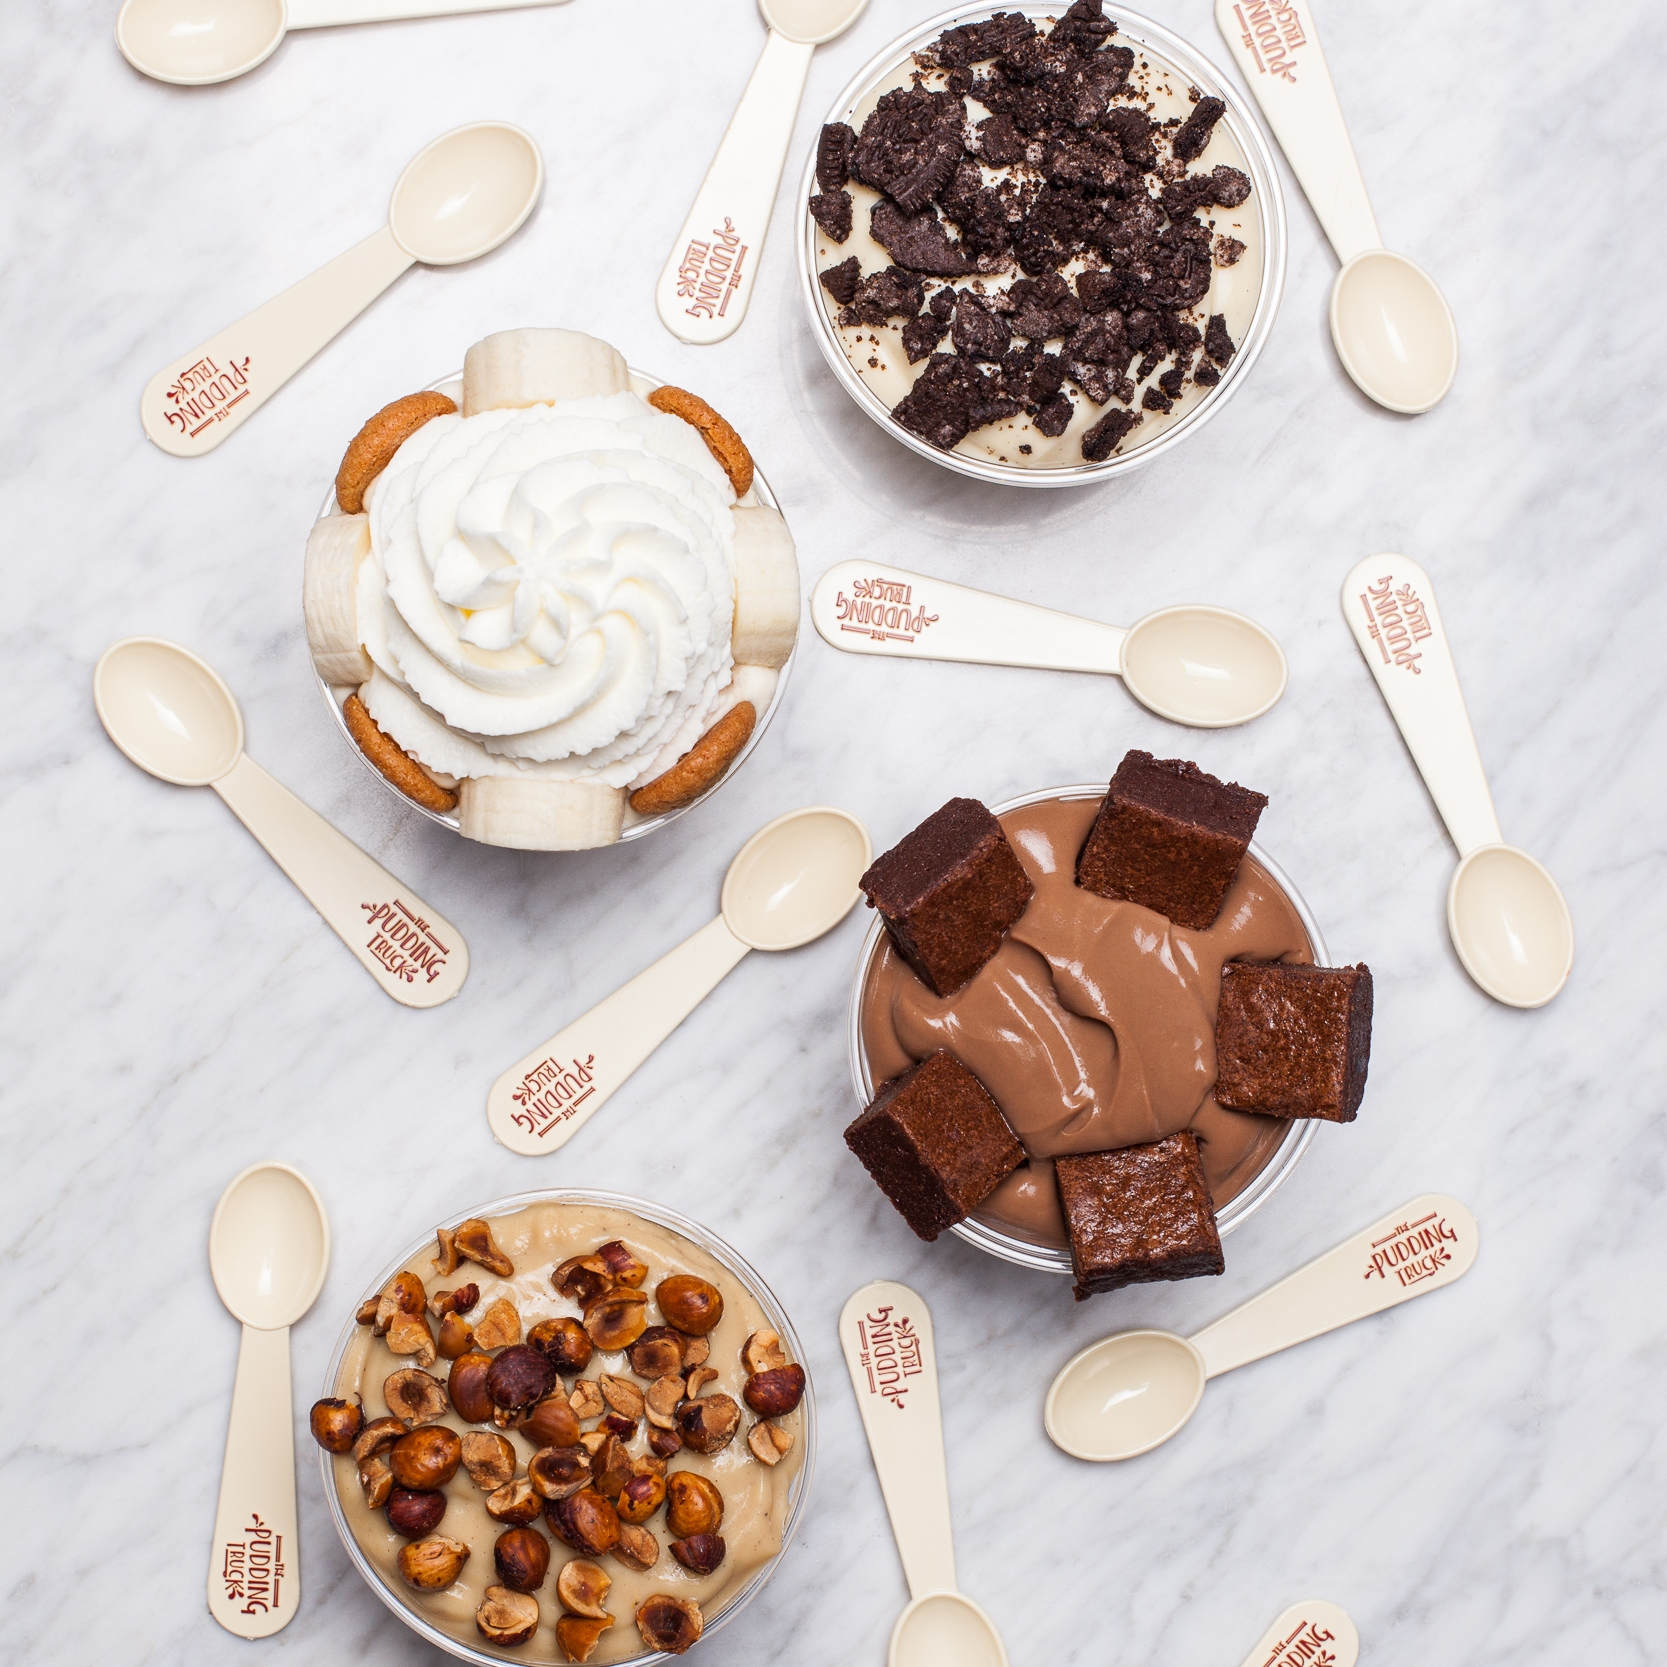 Seasonal Flavors - Vegan: Chocolate Hazelnut, Key Lime Coconut, Brown Sugar Banana, Vanilla Almond, Toasted Coconut Rice Pudding.Rotating: Pistachio Baklava, Stumptown Coffee, Peanut Butter, Lemon, Cheesecake, Pumpkin, and more.